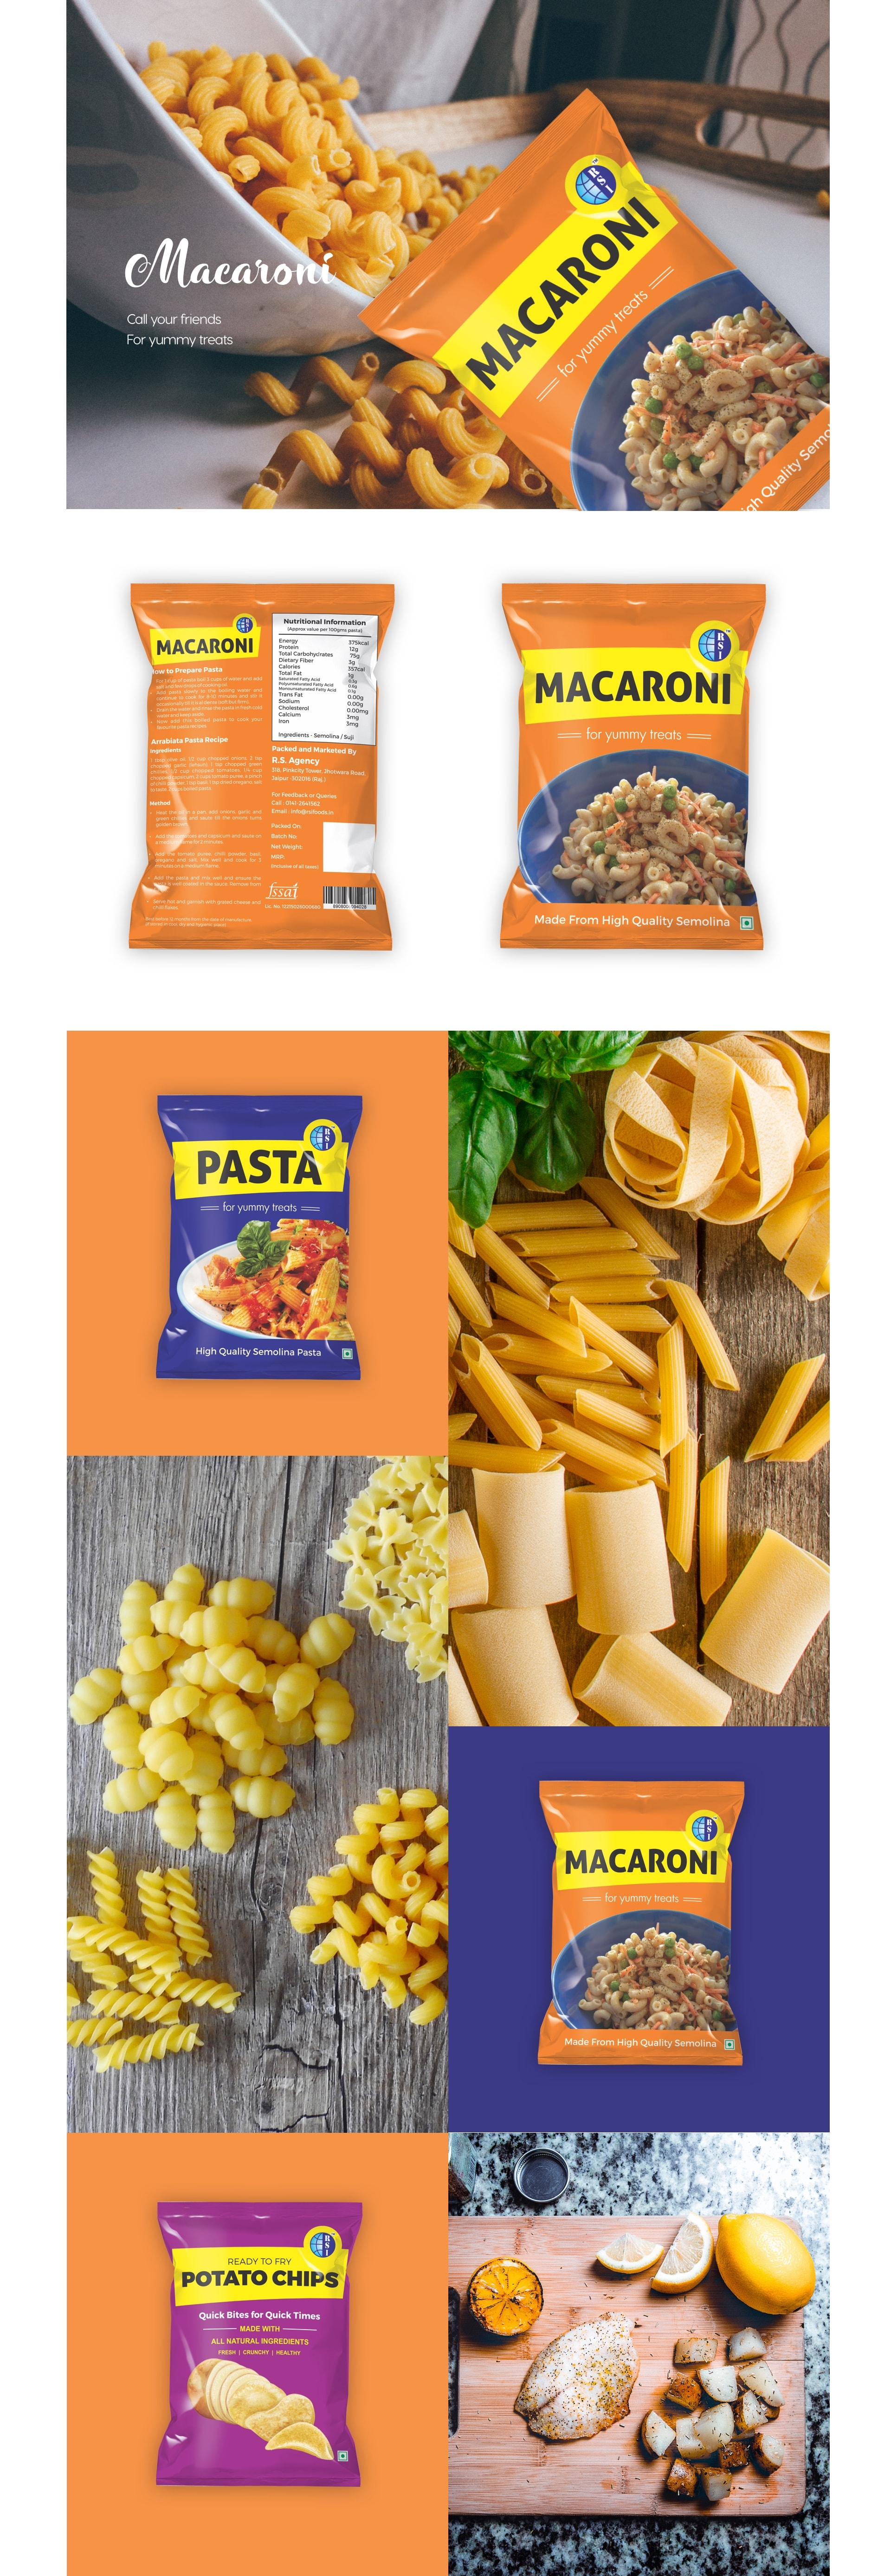 Macaroni by R.S. International , Procedure to make healthy potato chip. , Inside the package pasta by R.S. International , Inside the macaroni pasta by R.S. International , Inside the package potato chip by R.S. International ,